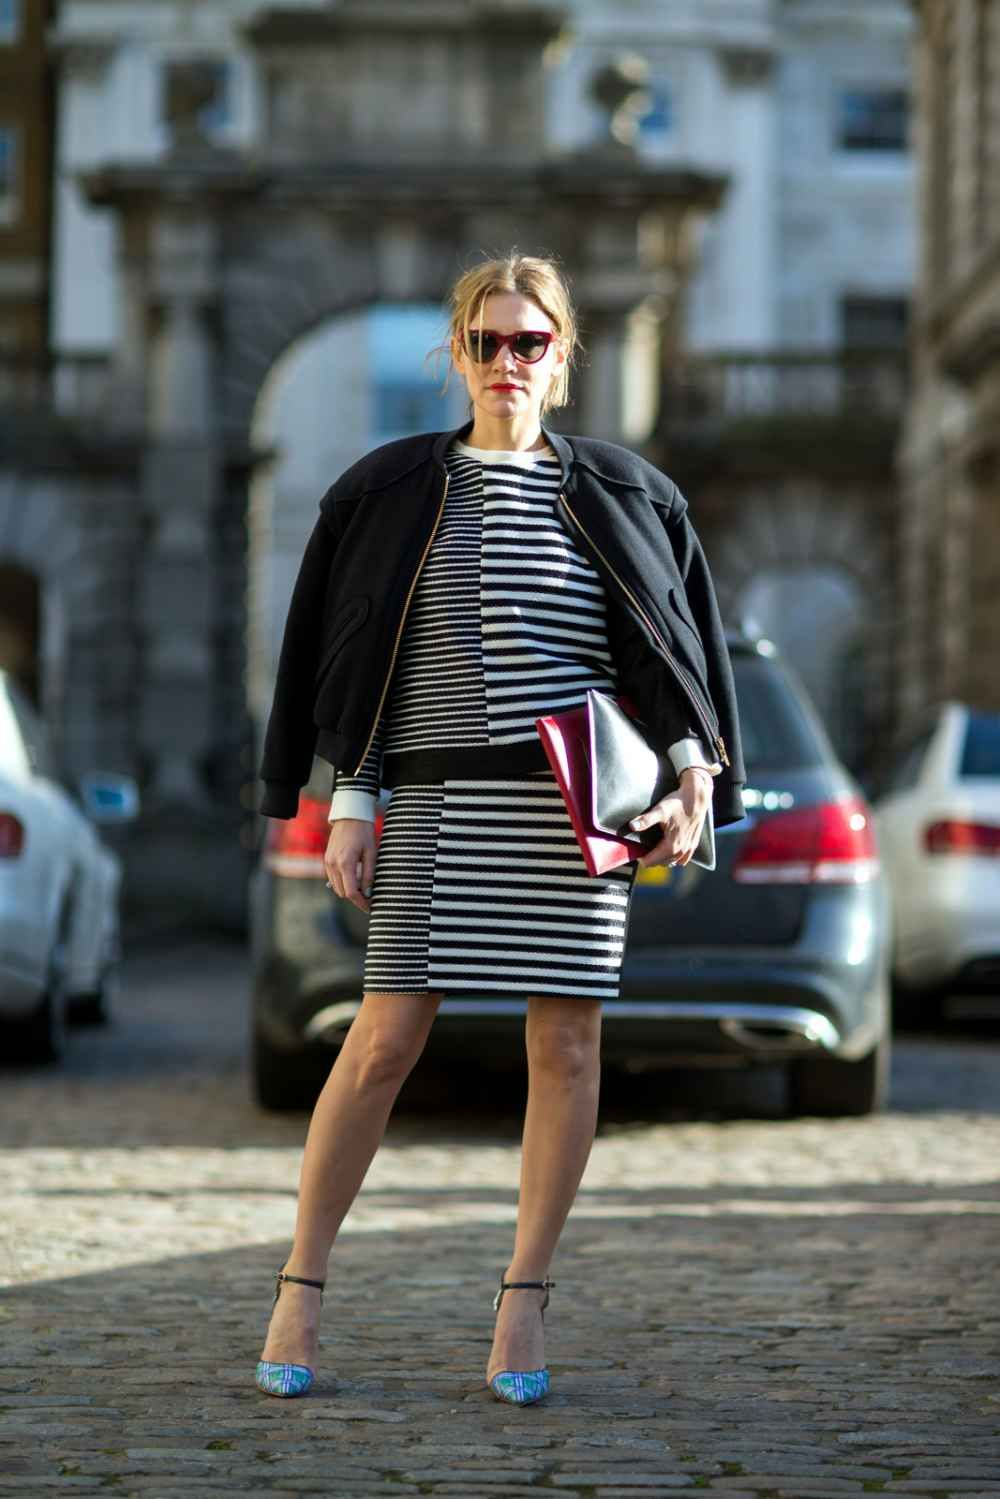 Stripes Outfits - New Styling Ideas